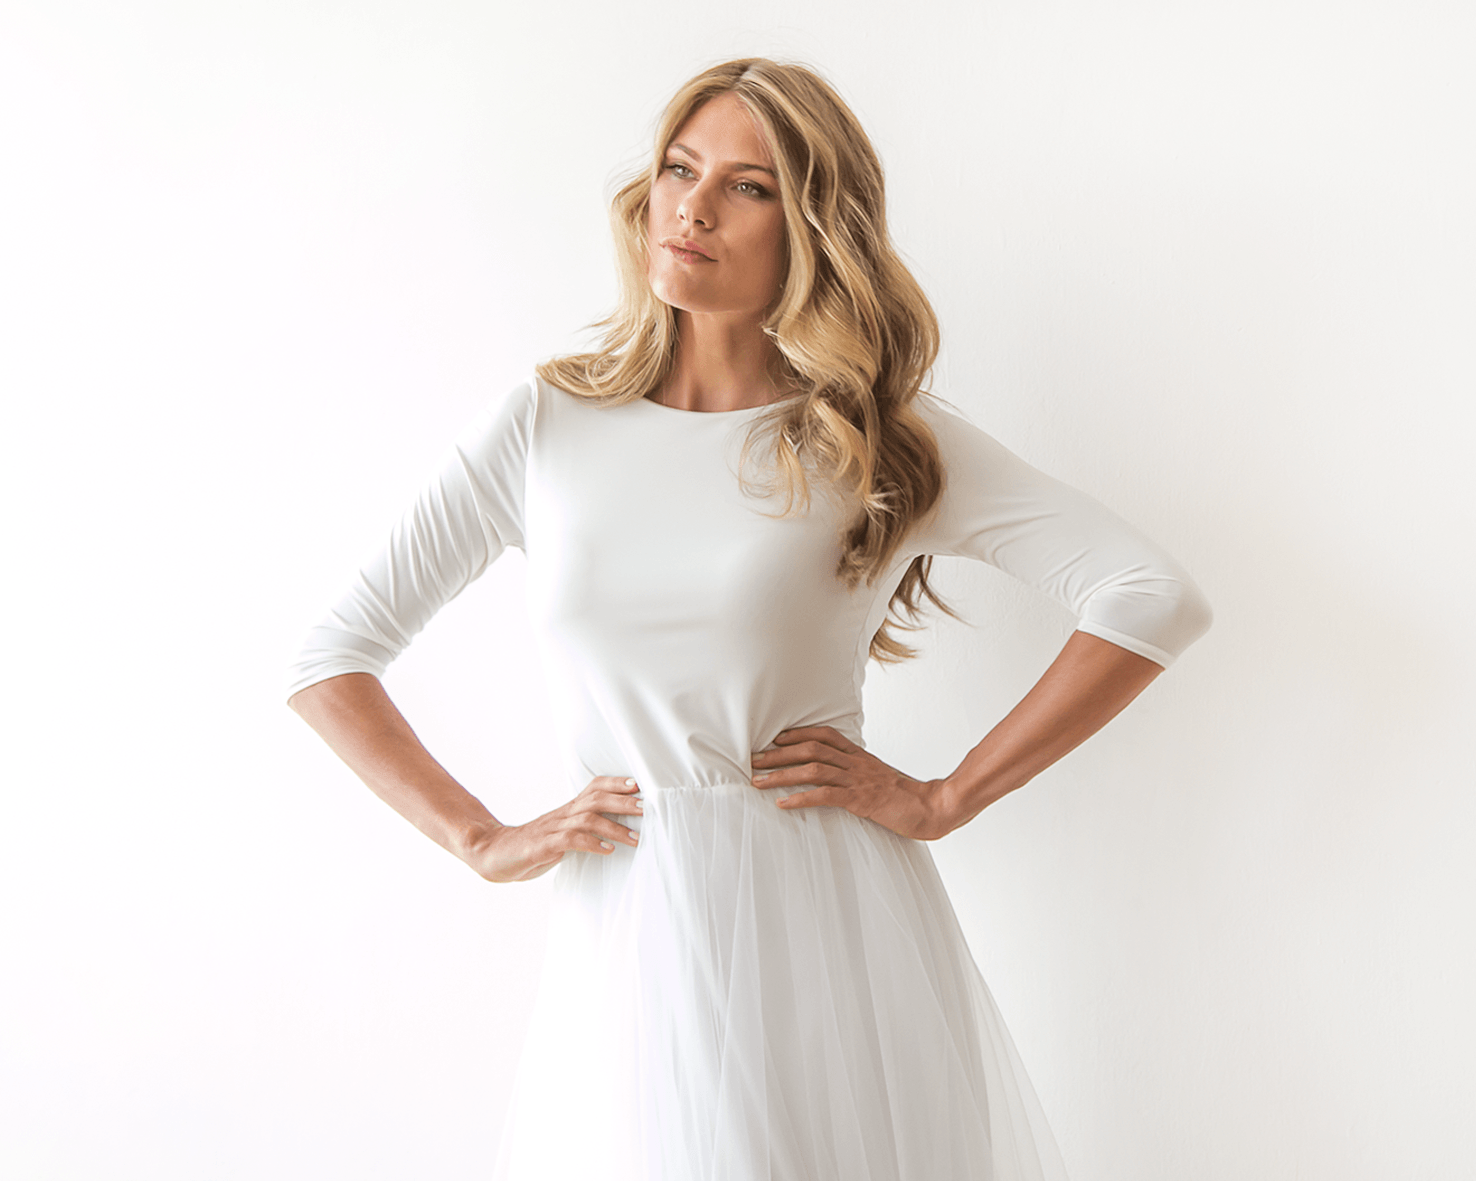 Ivory Open Bacl Tulle Midi Dress SALE 1051 - Blushfashion